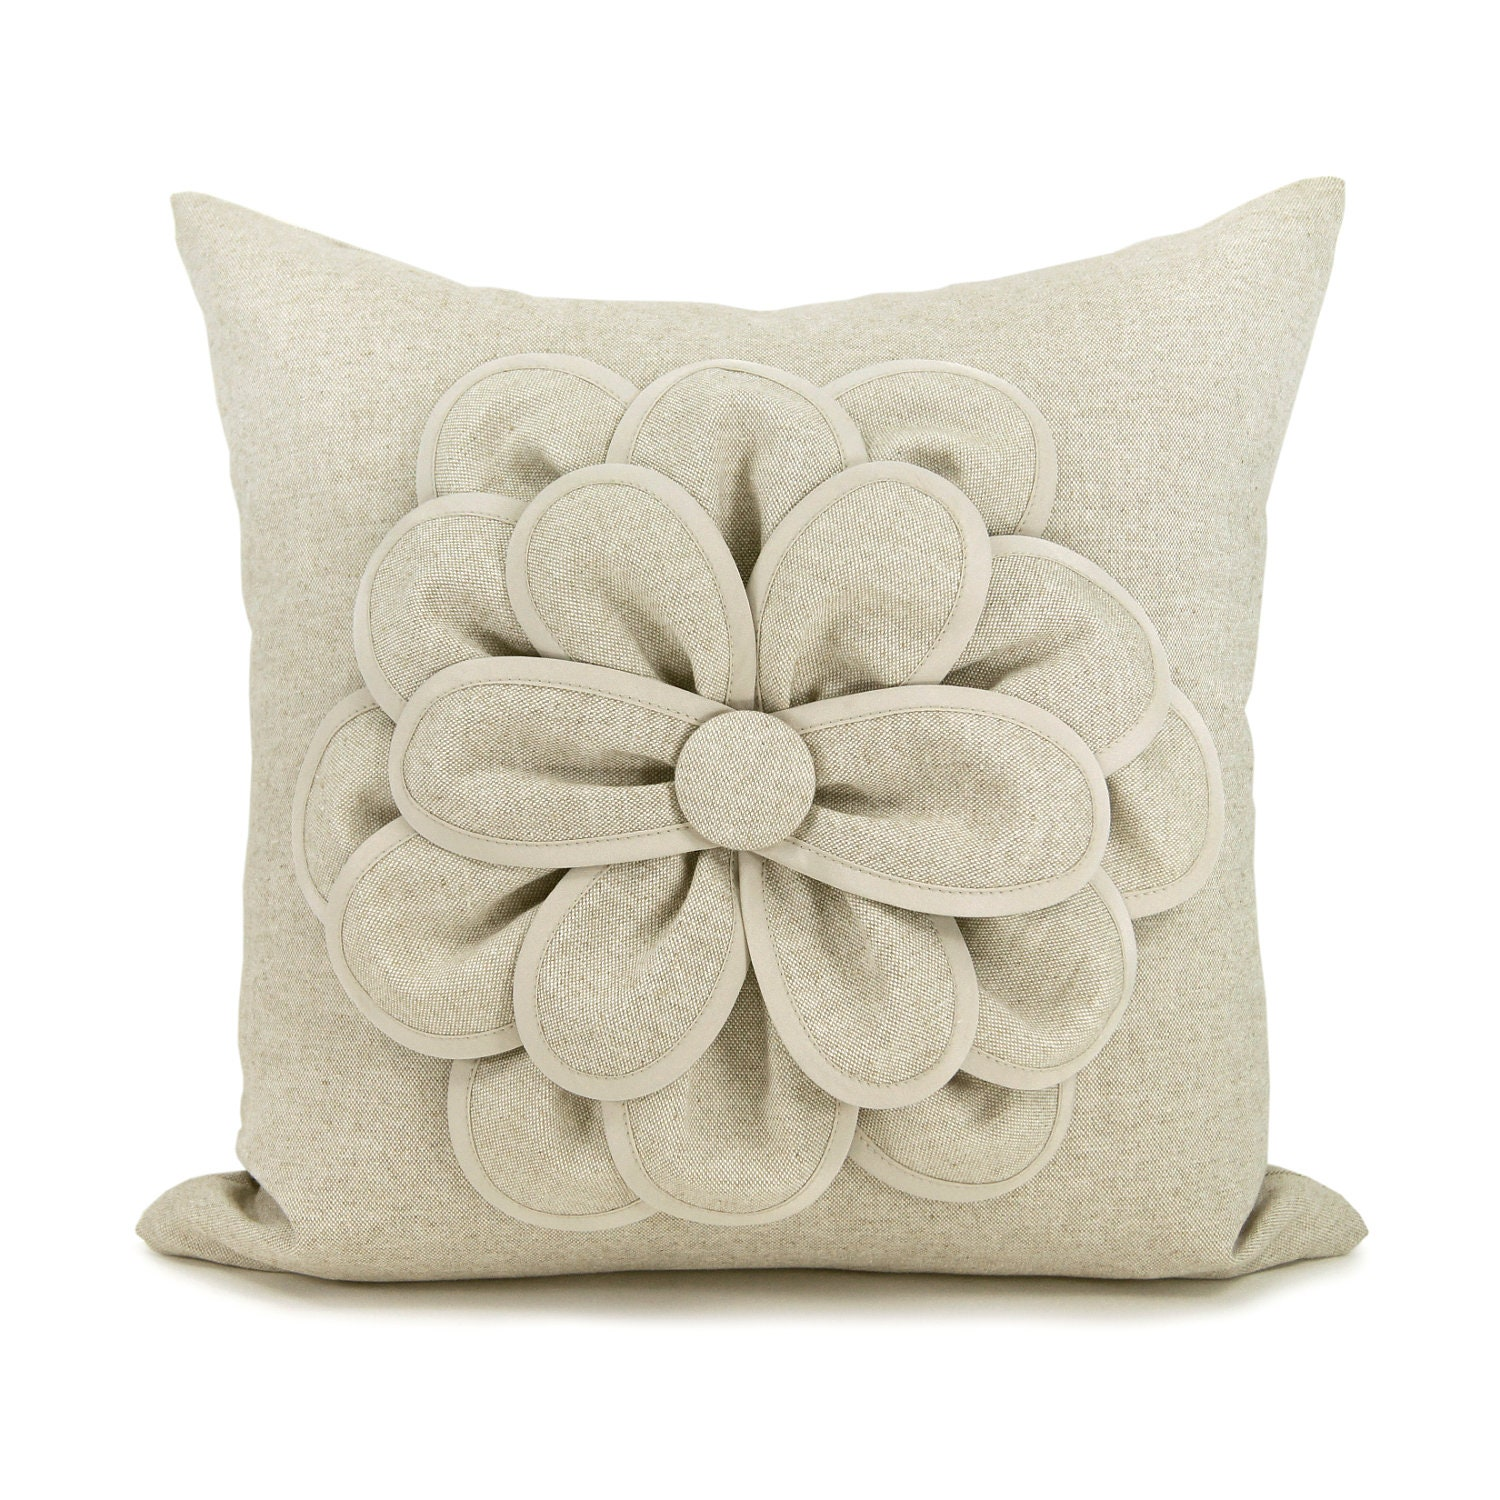 Decorative Pillows Flowers : 16x16 Decorative Pillow Cover Flower Pillow Cover Natural